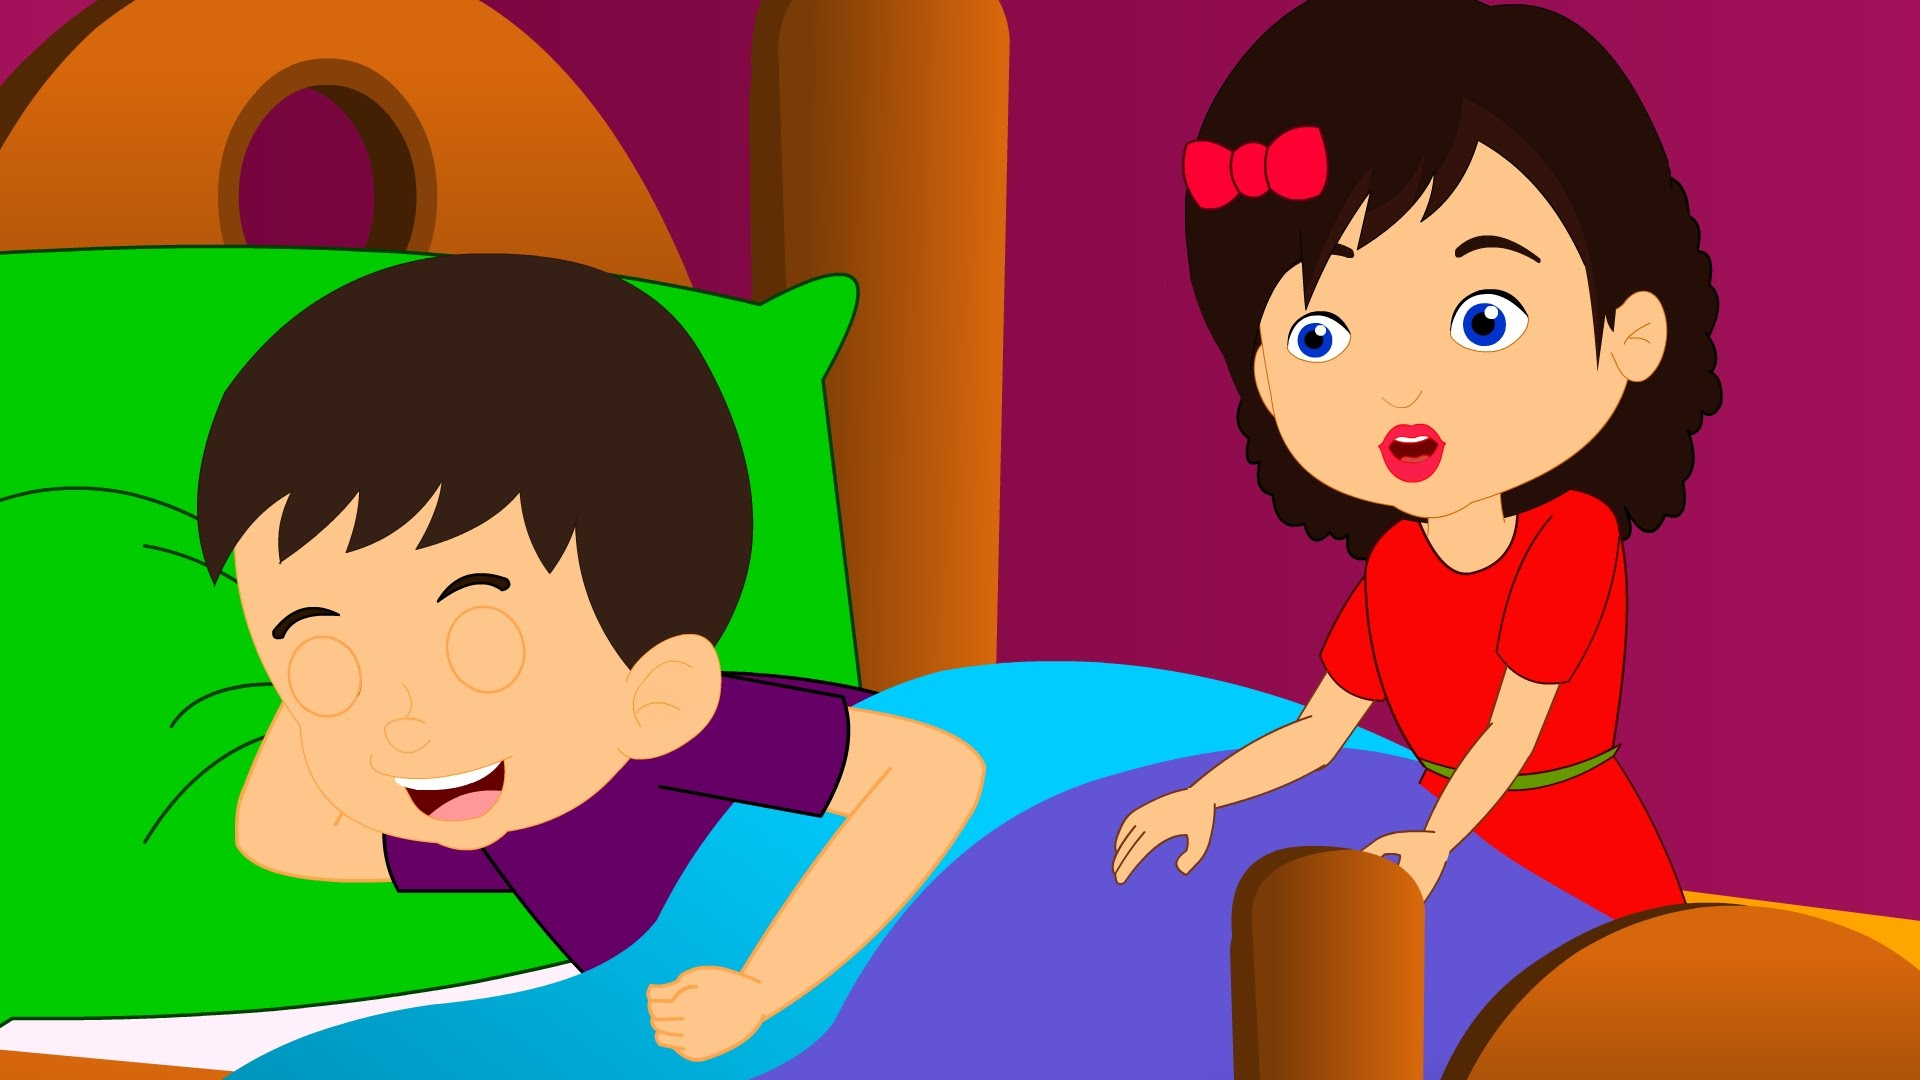 Brother clipart animated. Are you sleeping john